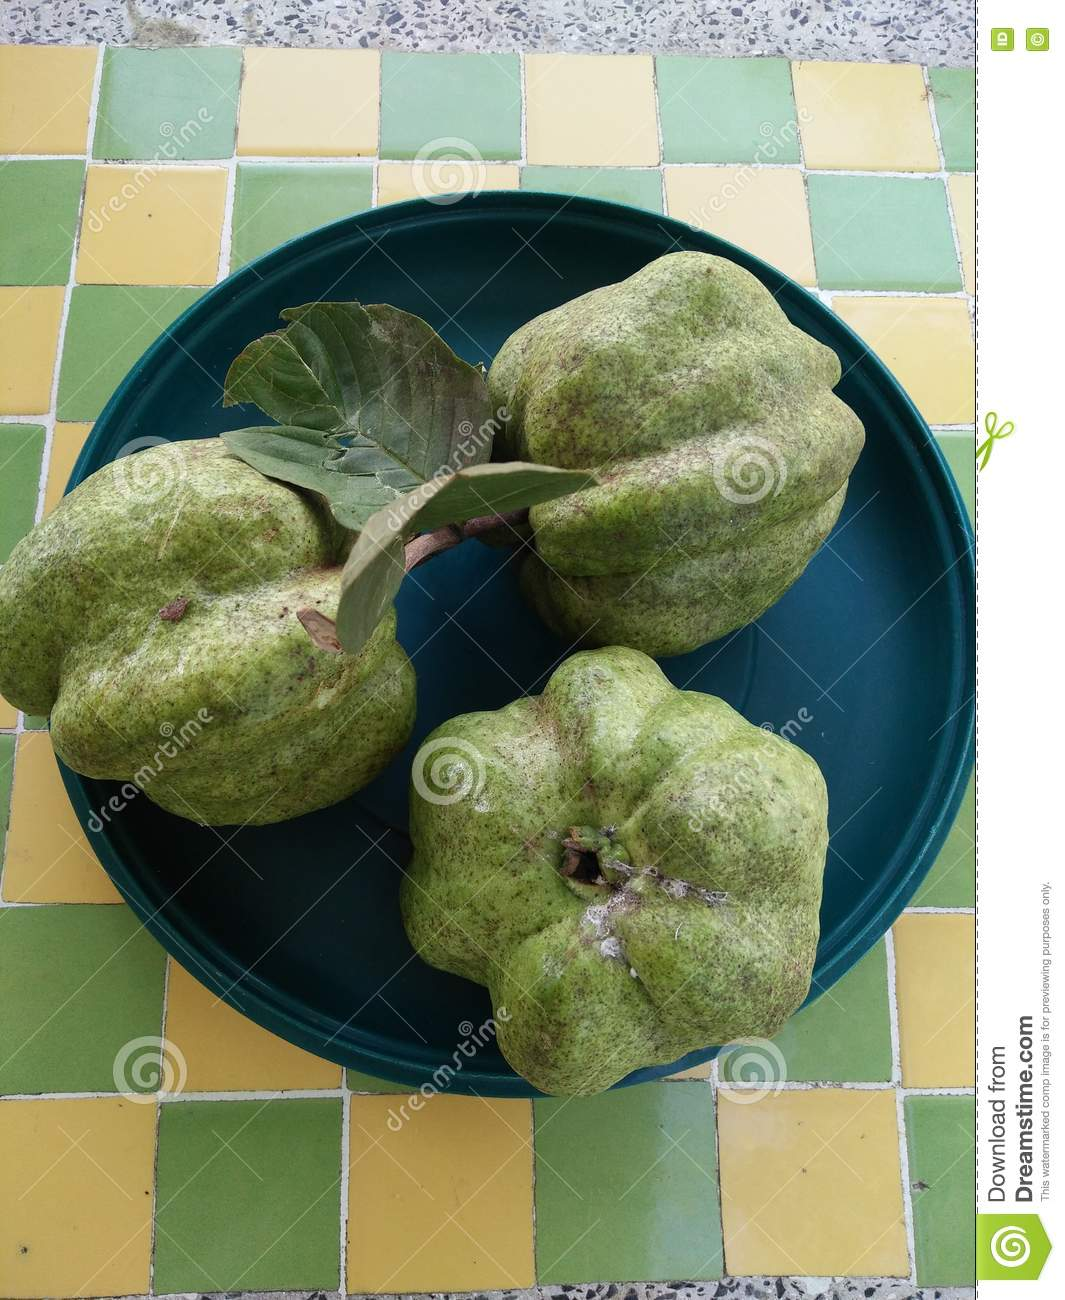 How To Eat Fresh Guava Fruit Solution For How To For Dummies